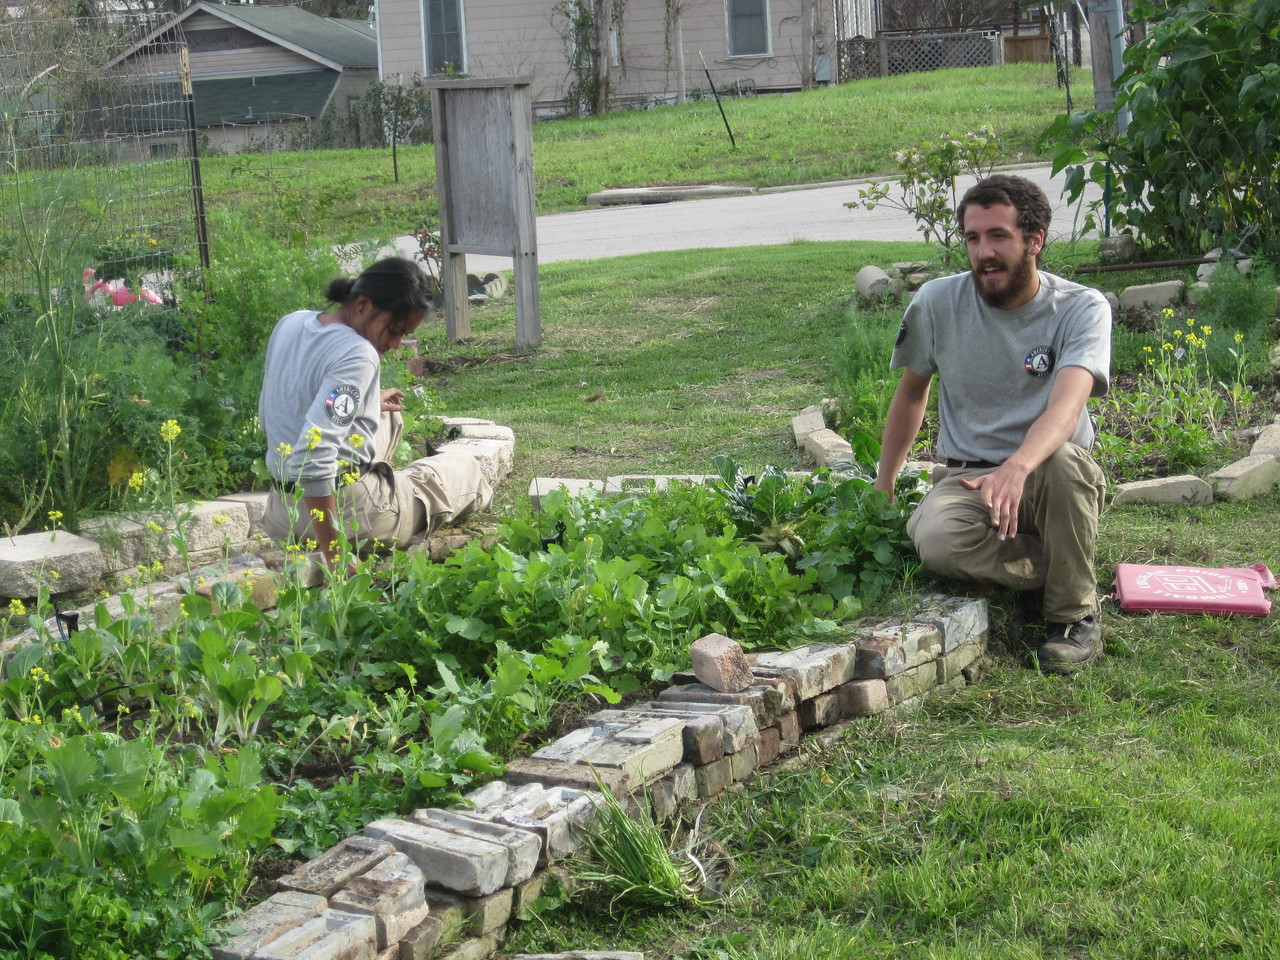 Mona Al-Abadi and Chris Corrigan working at a community garden for Earth 7's Day of Service AmeriCorps NCCC. Corporation for National and Community Service Photo.